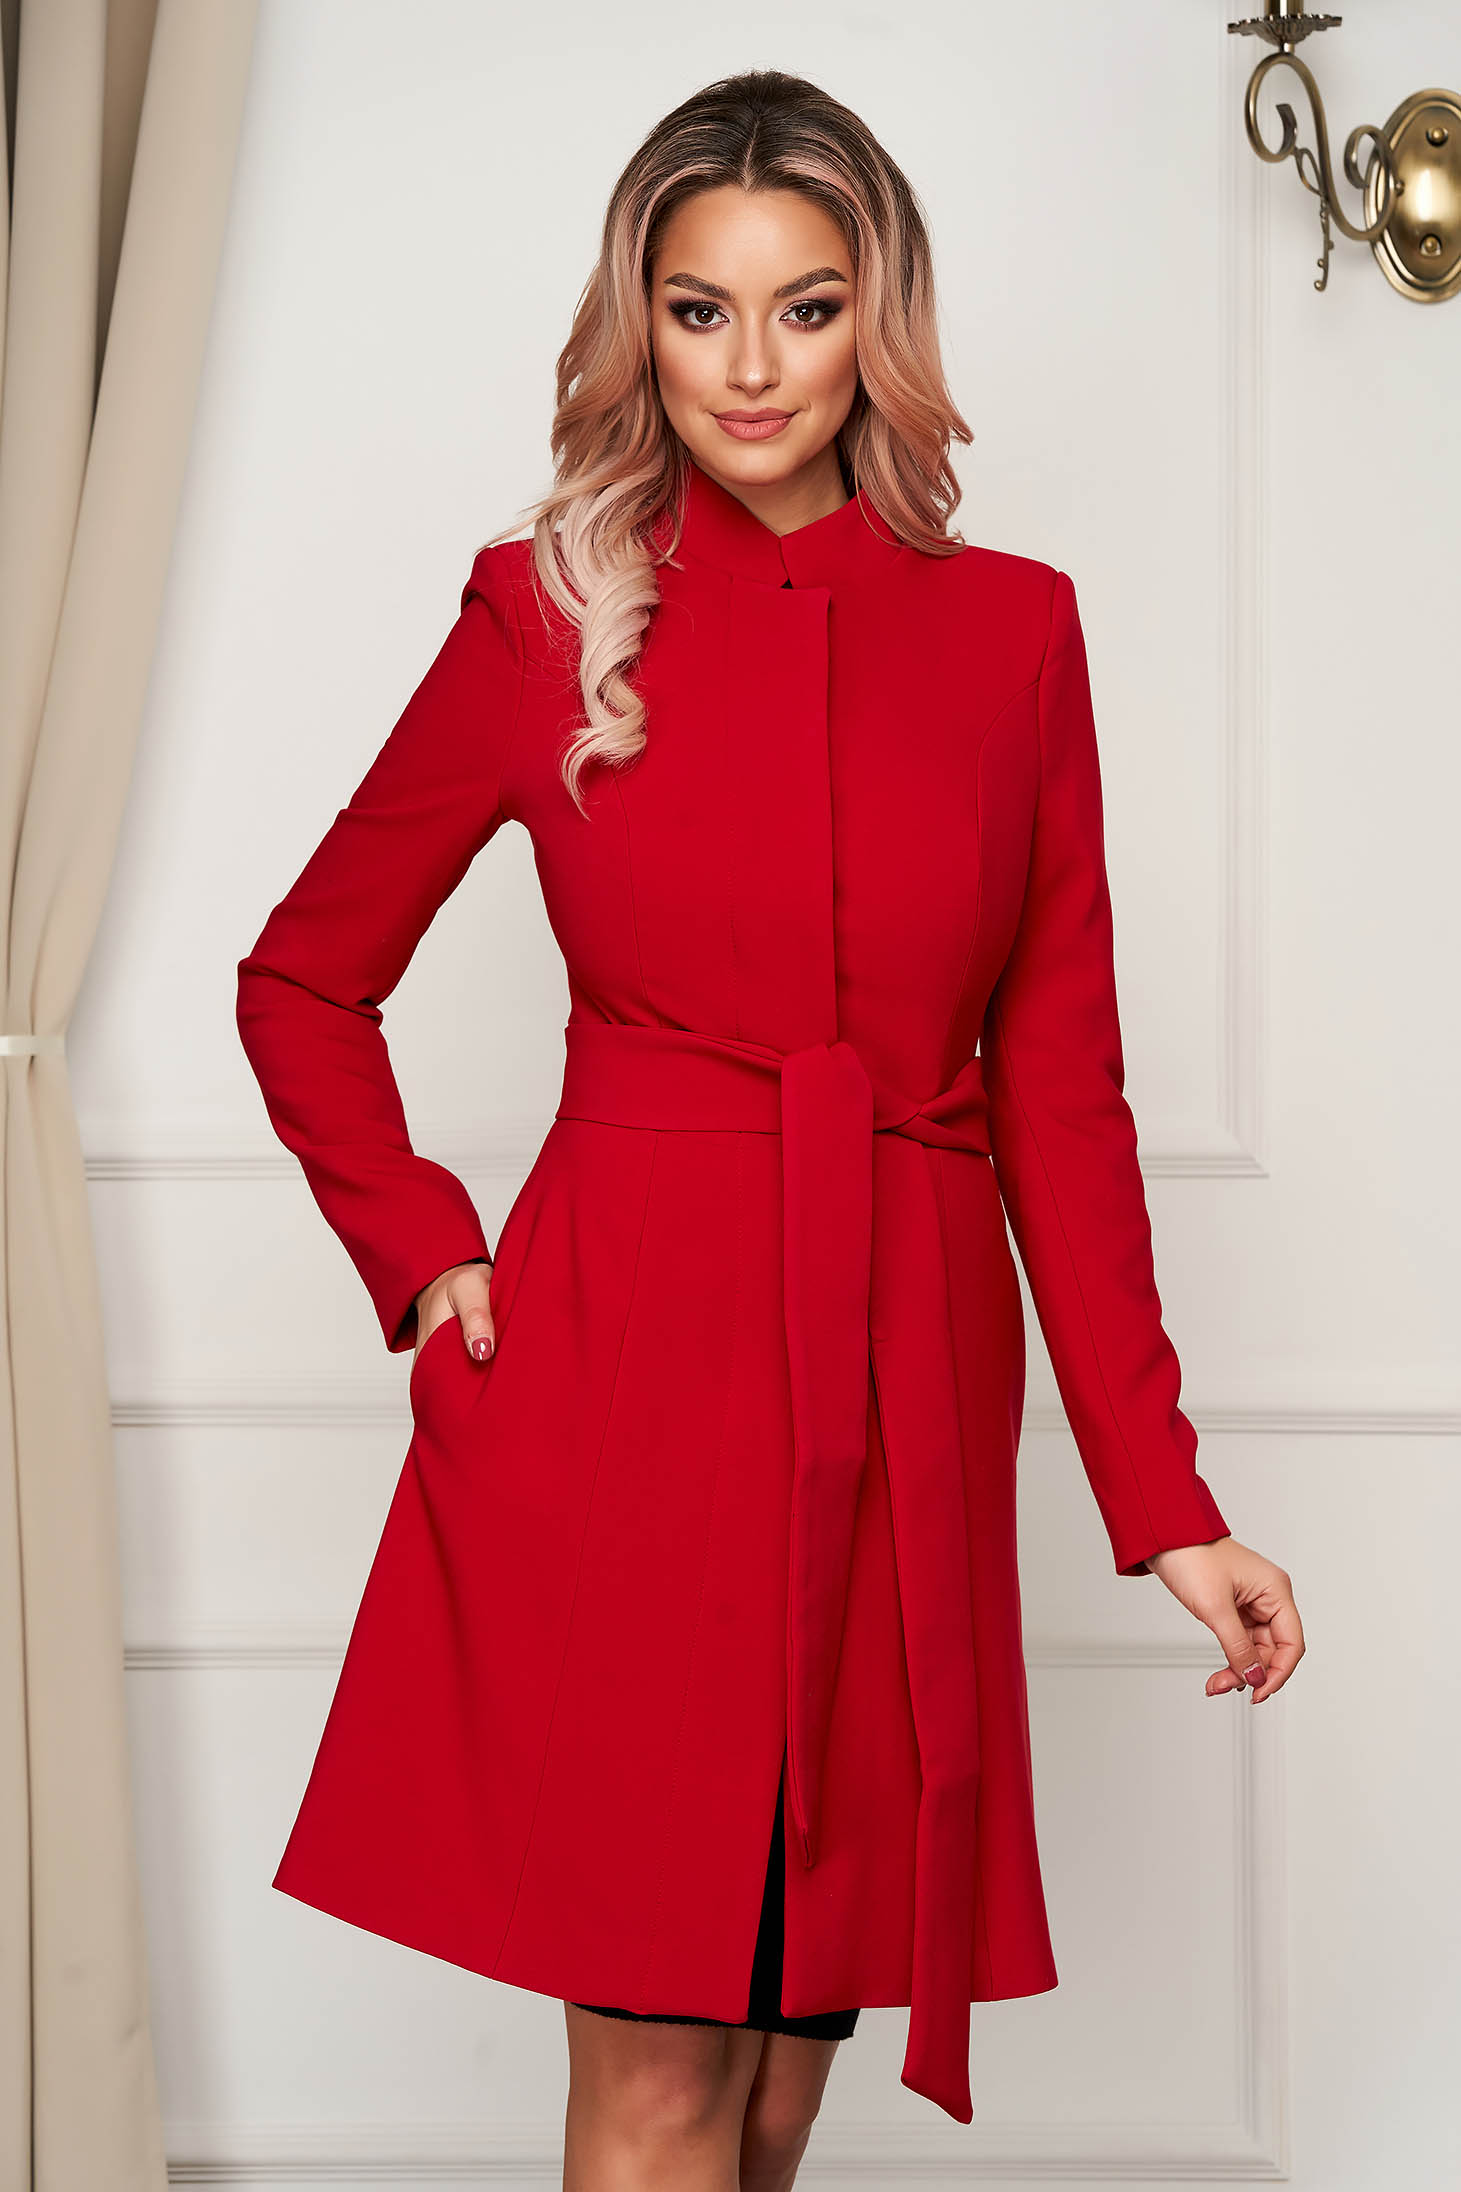 Cloche with inside lining accessorized with tied waistband elegant with bow red overcoat